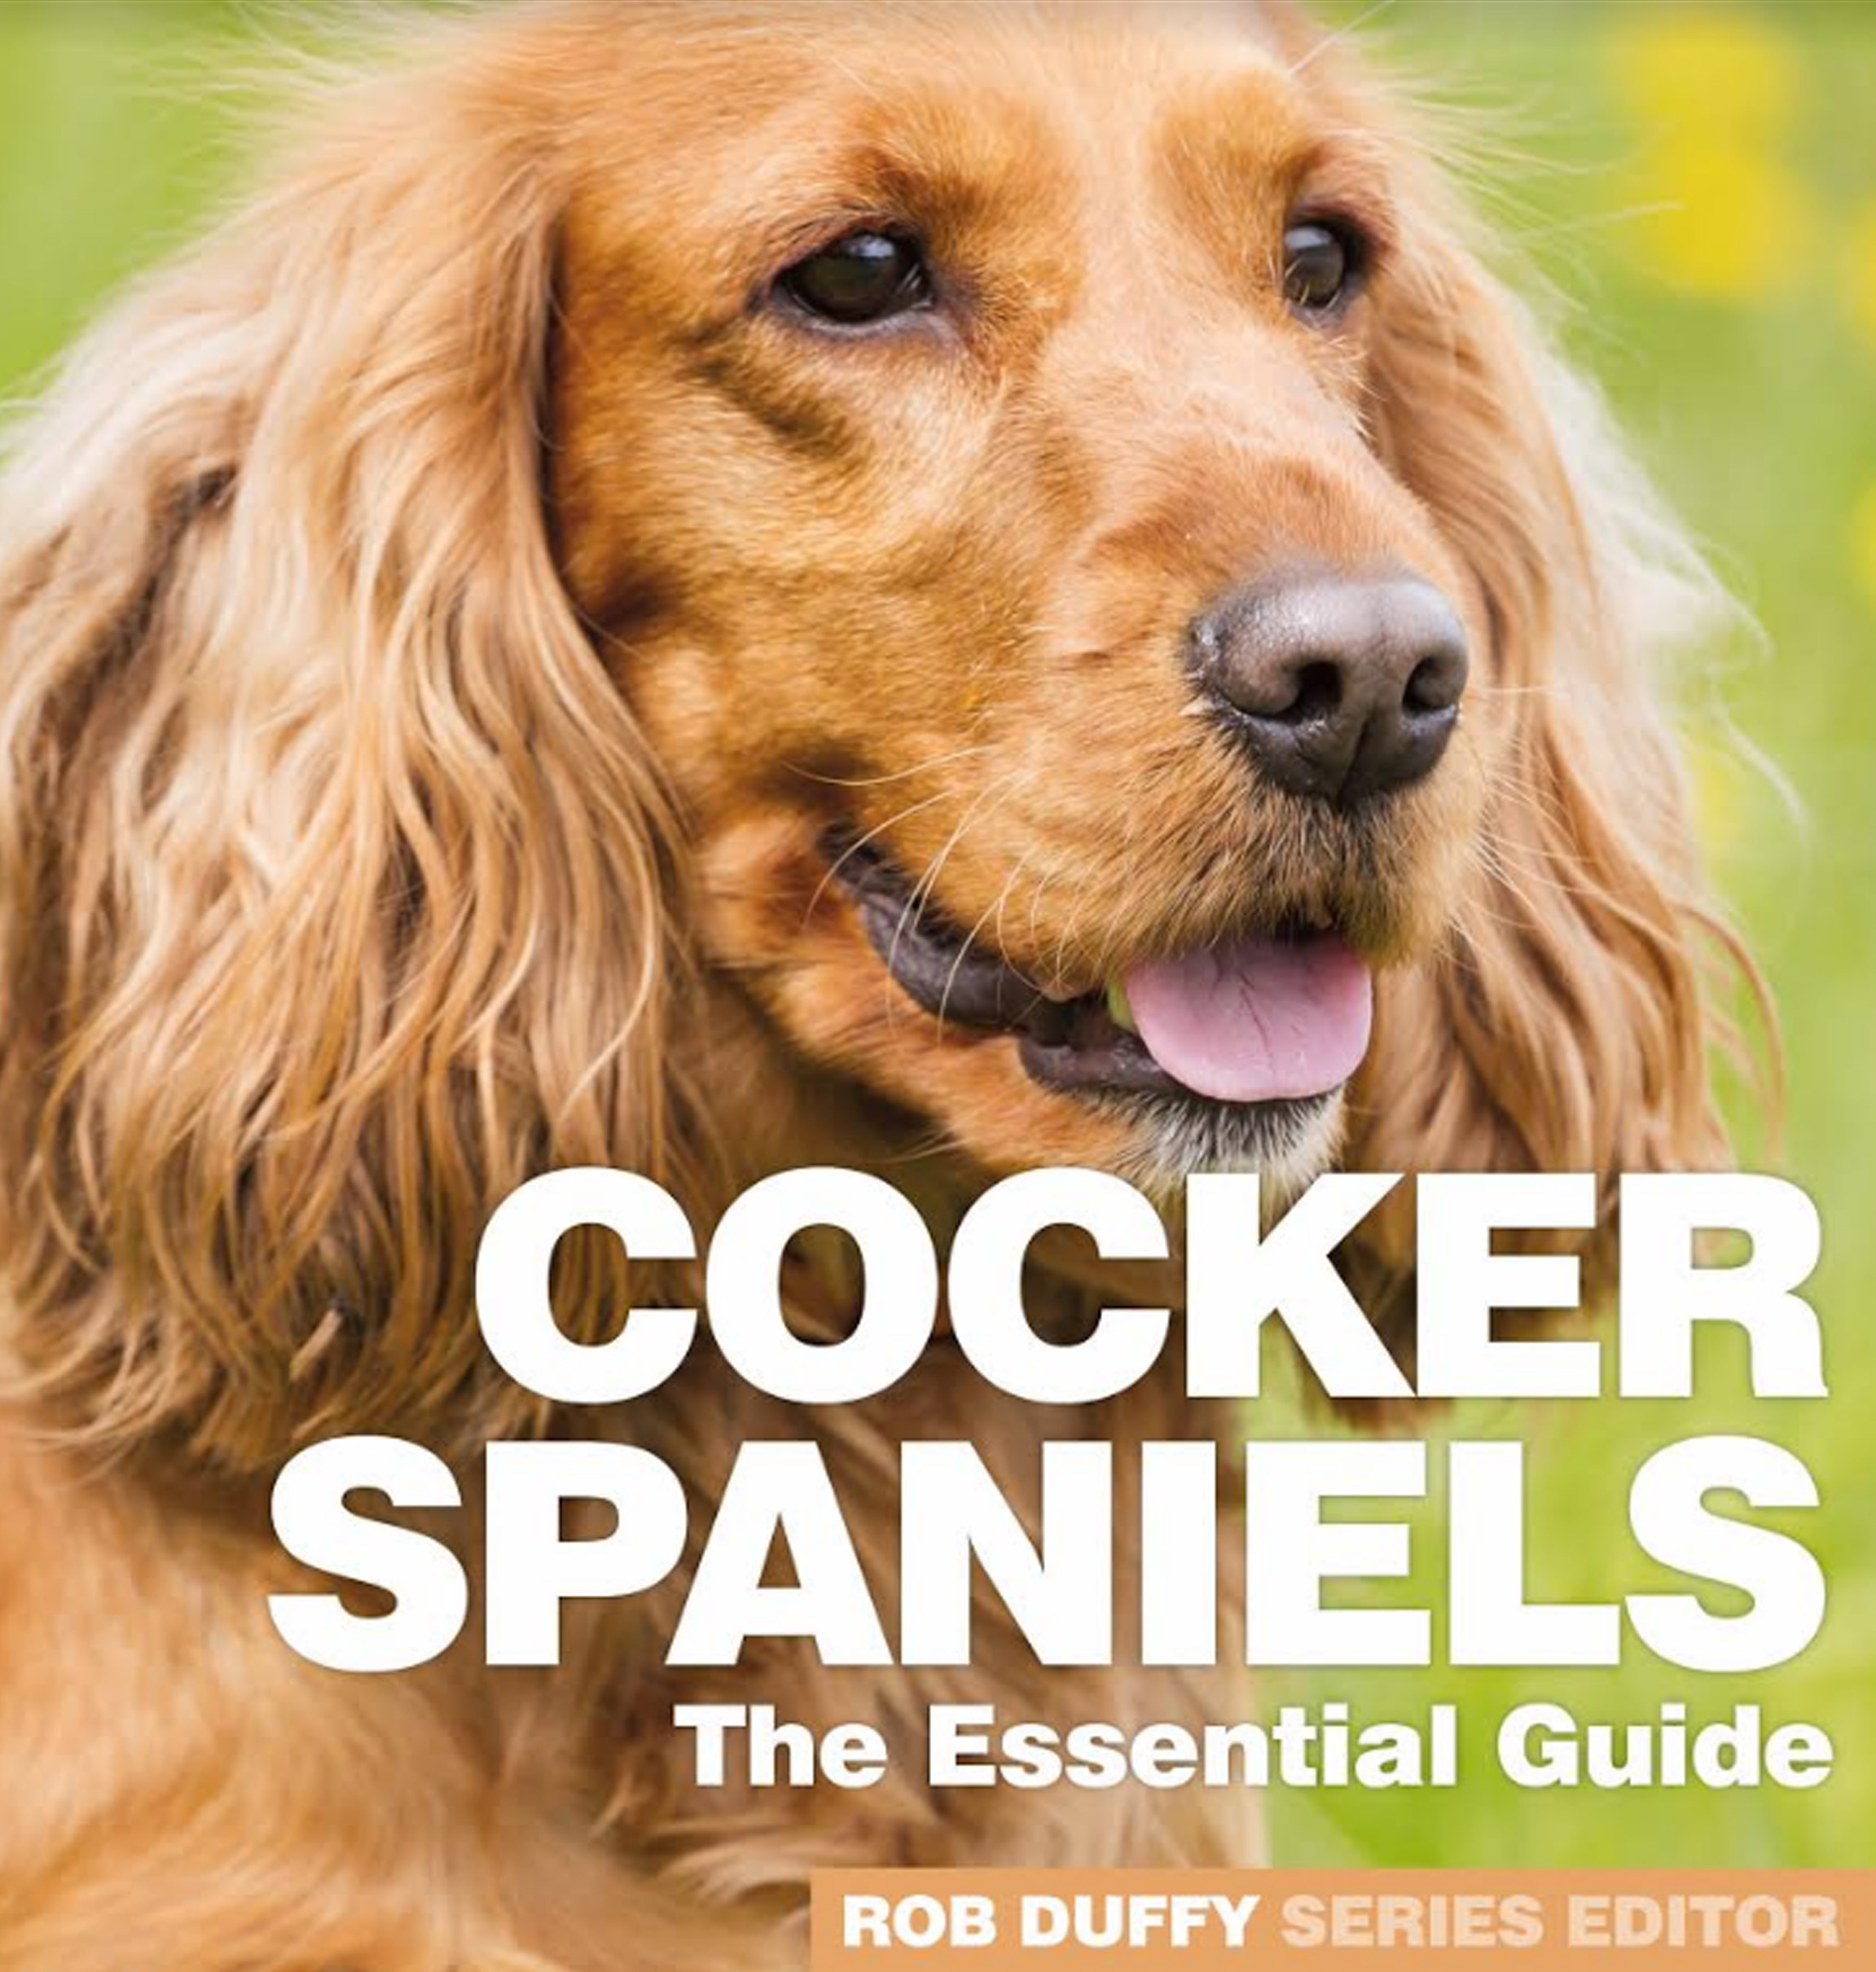 Cocker Spaniels The Essential Guide